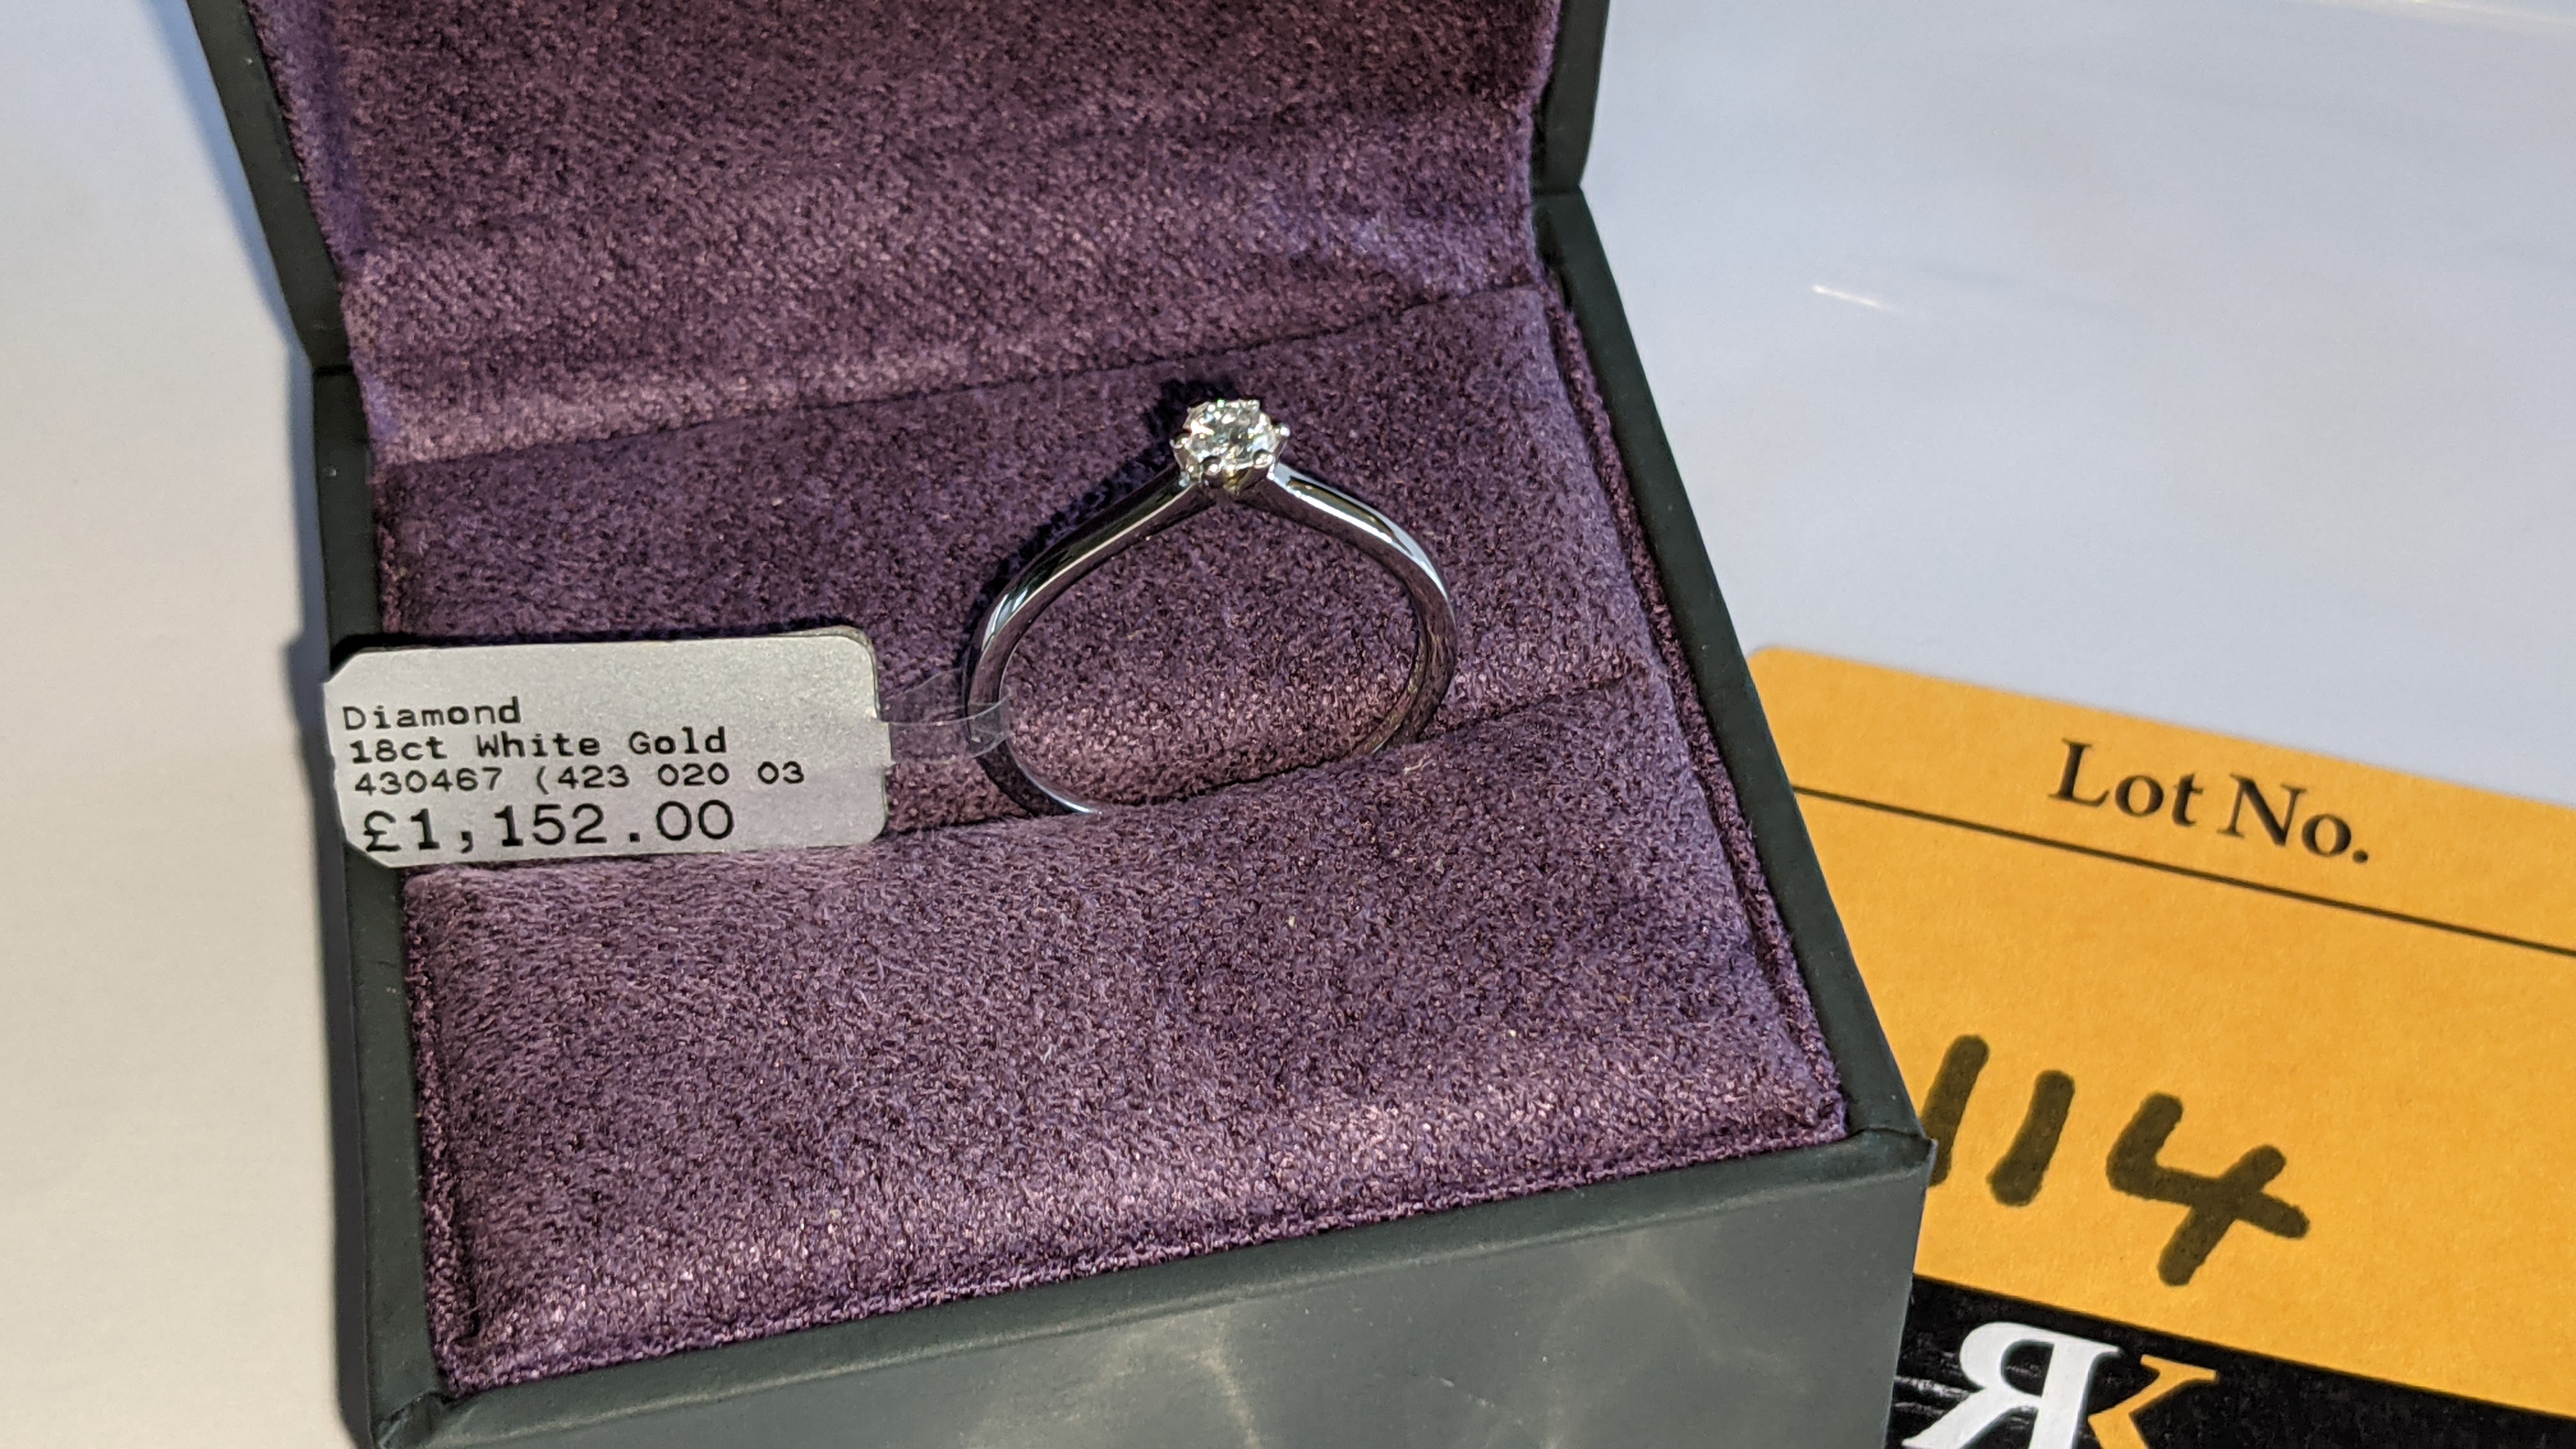 18ct white gold ring with 0.20ct G/Si brilliant cut diamond RRP £1,152 - Image 2 of 16